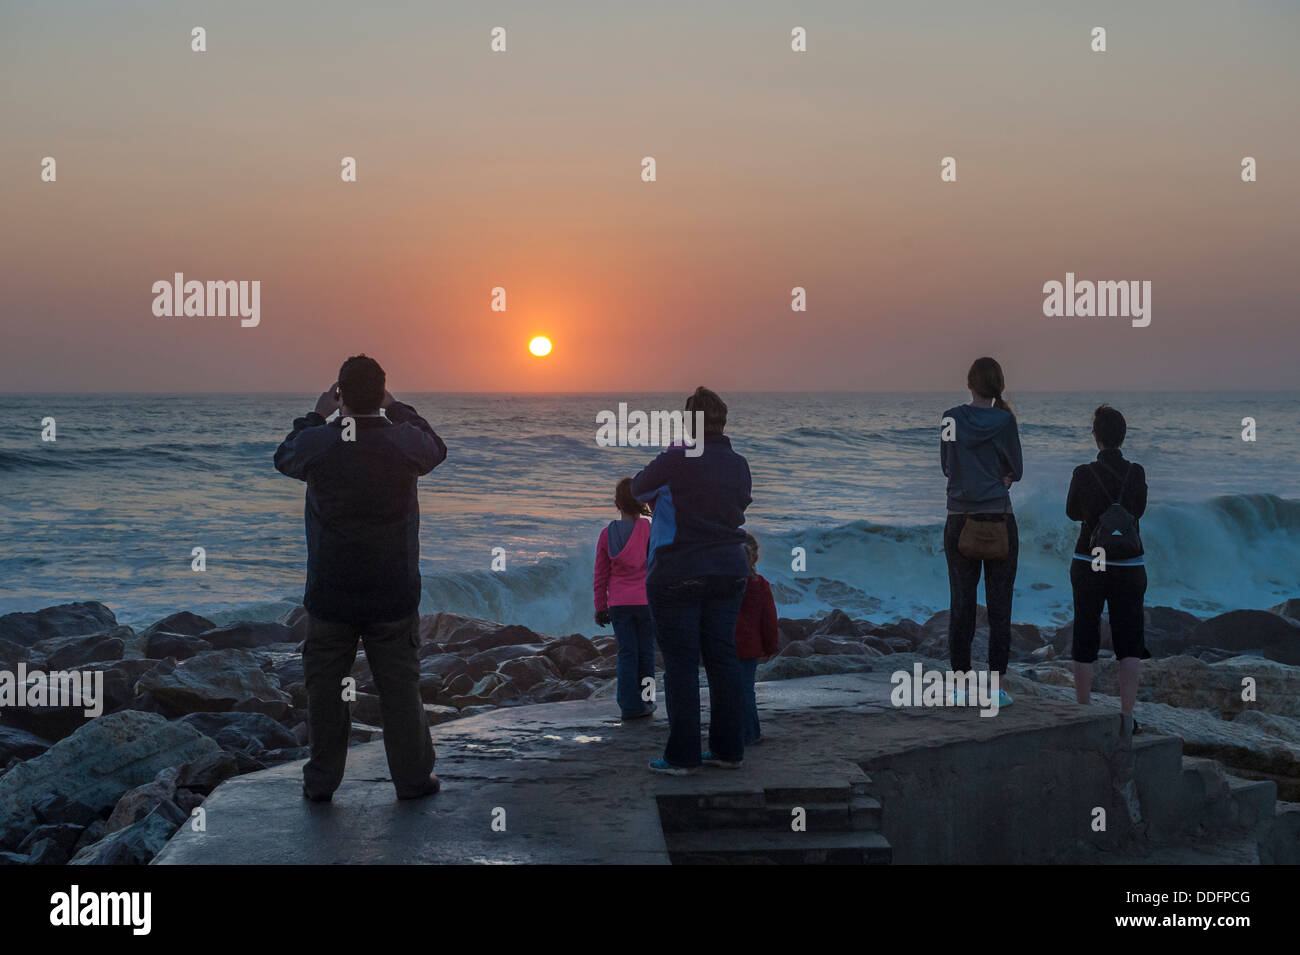 A family watches and photographs the  sunset over the ocean at Swakopmund, Namibia - Stock Image